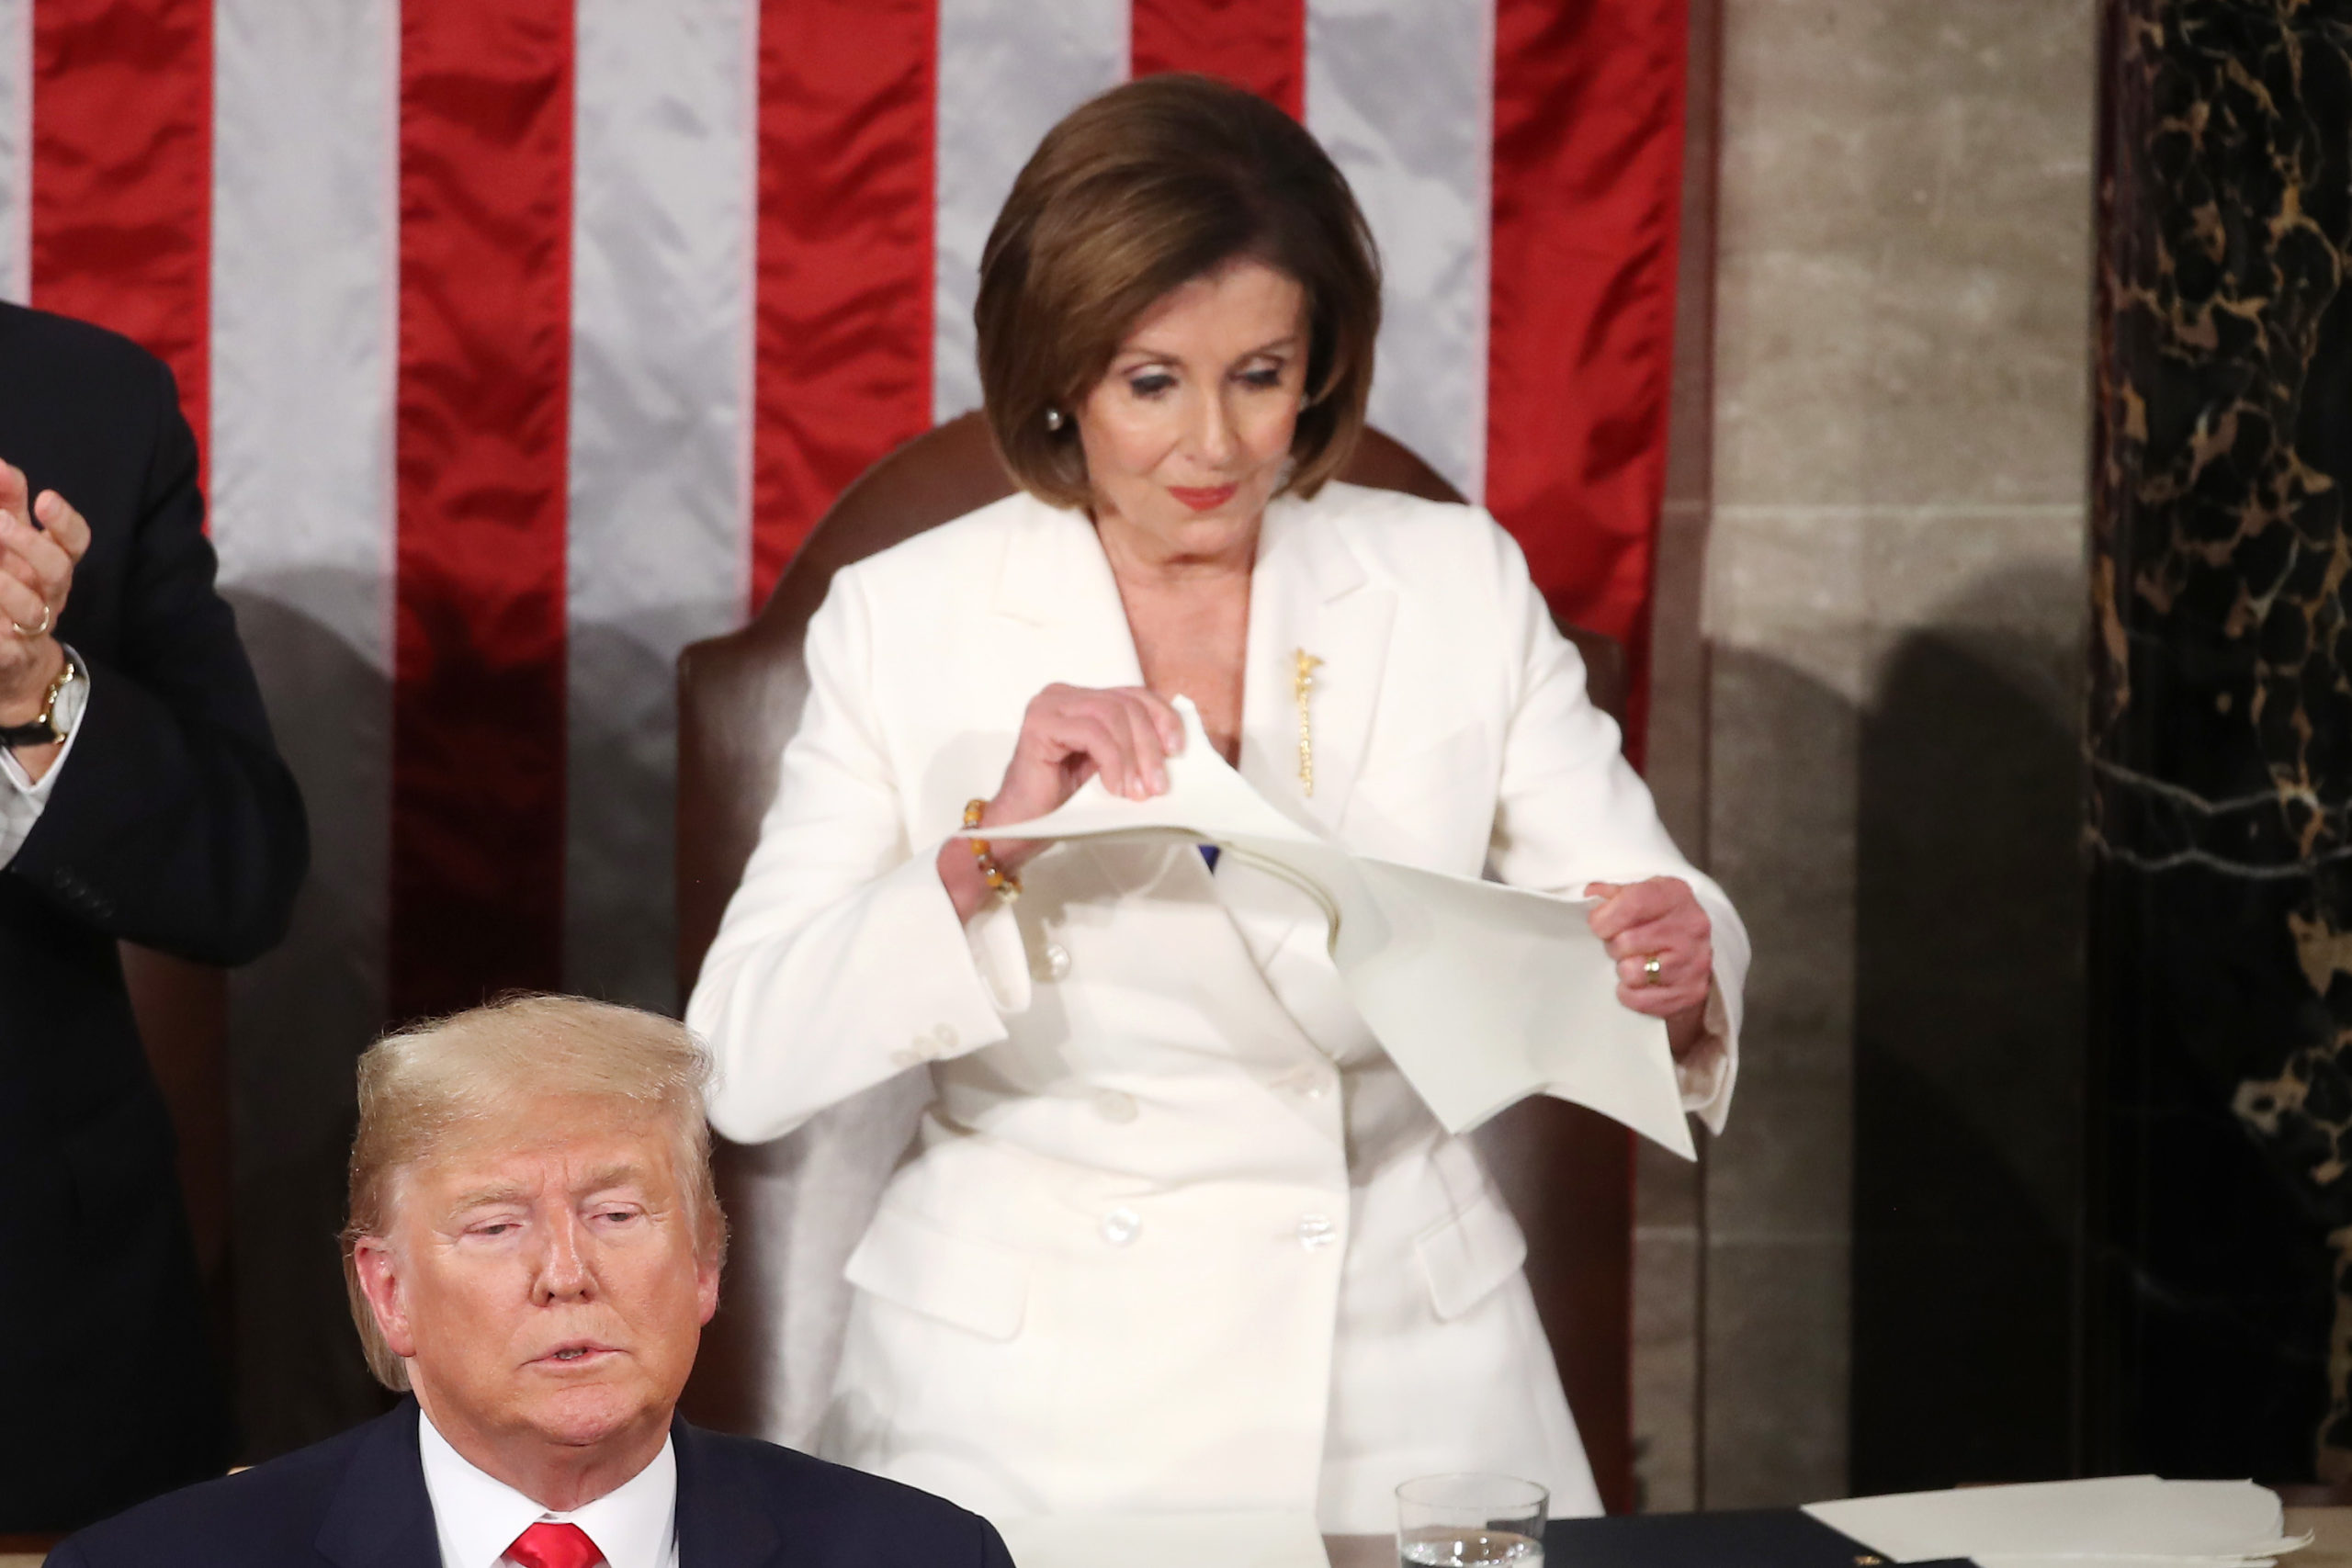 Trump's State of the Union didn't include a single mention of LGBT issues